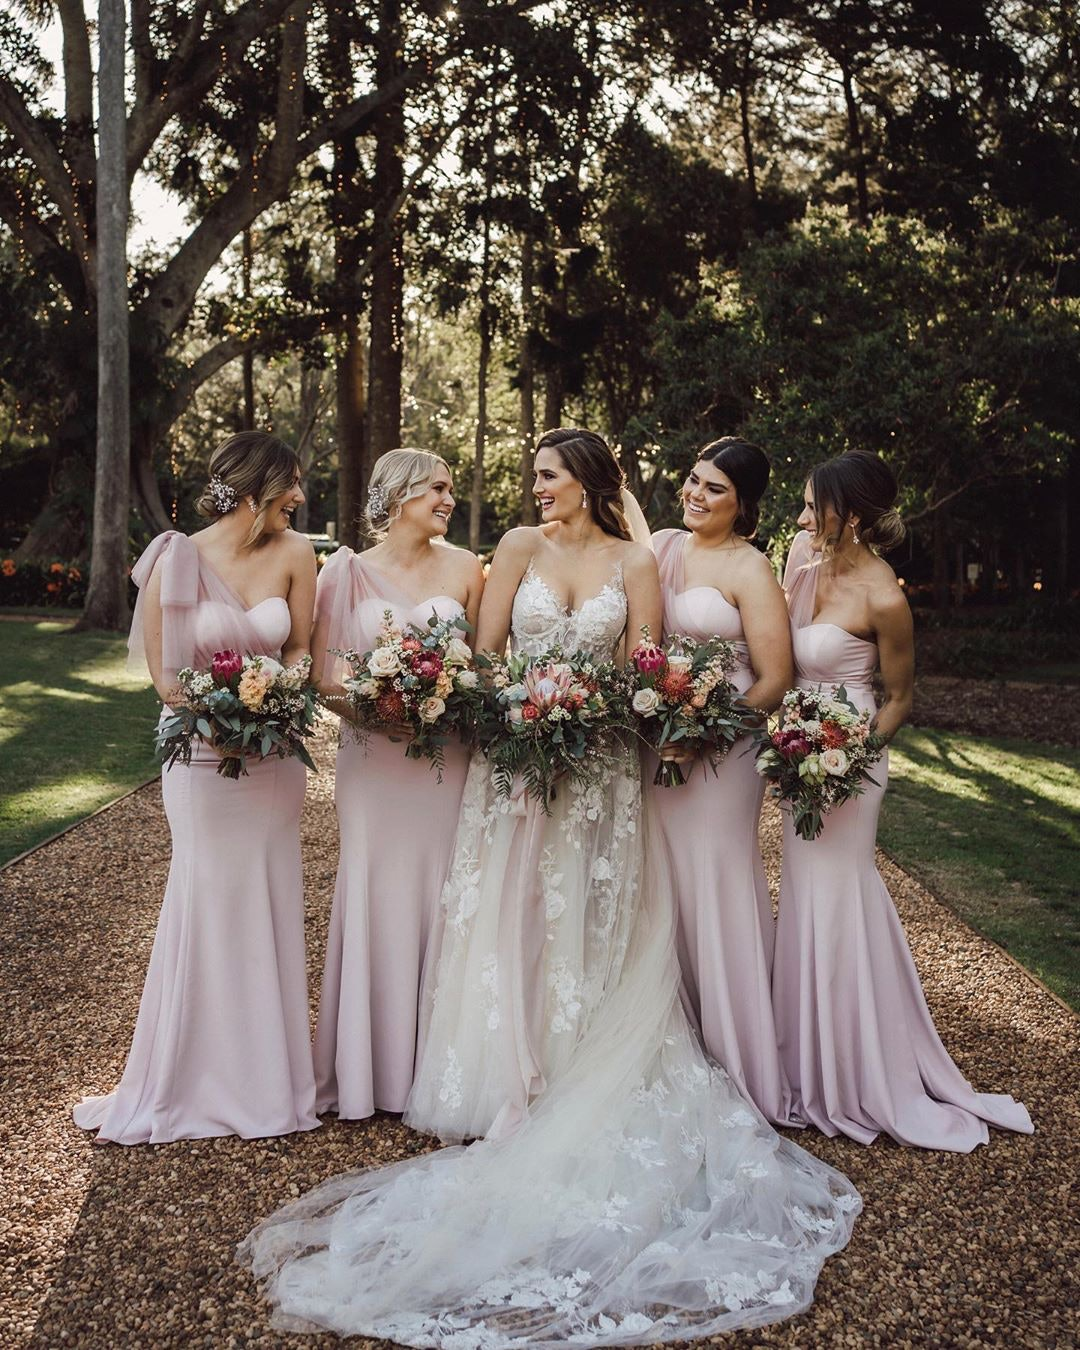 Bride and bridesmaids standing on driveway